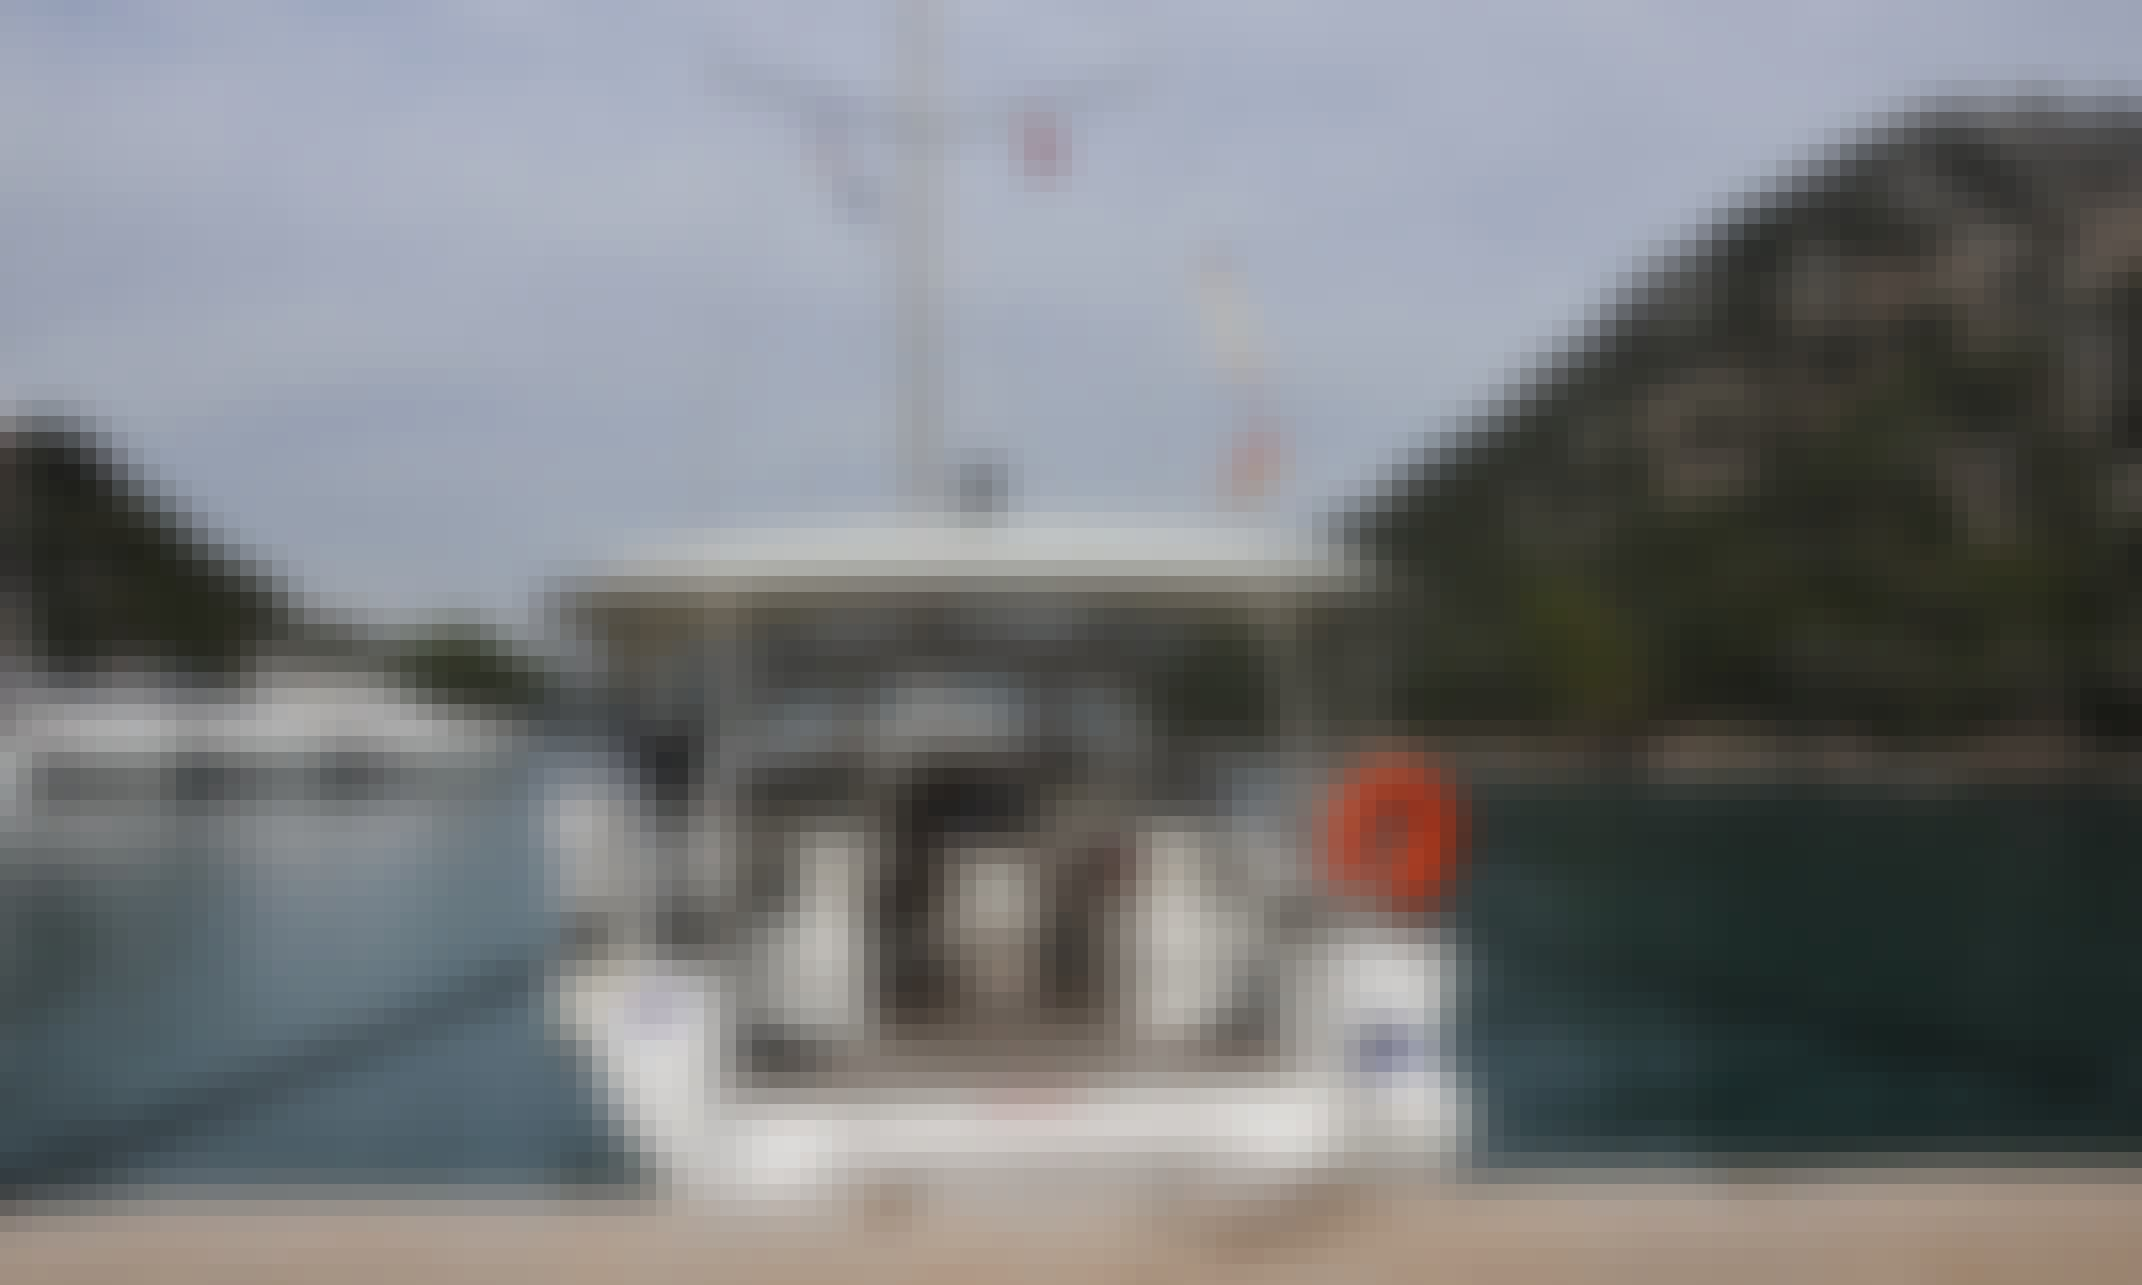 Bavaria 40 Cruiser Sailing Charter with or without Skipper in Muğla, Turkey